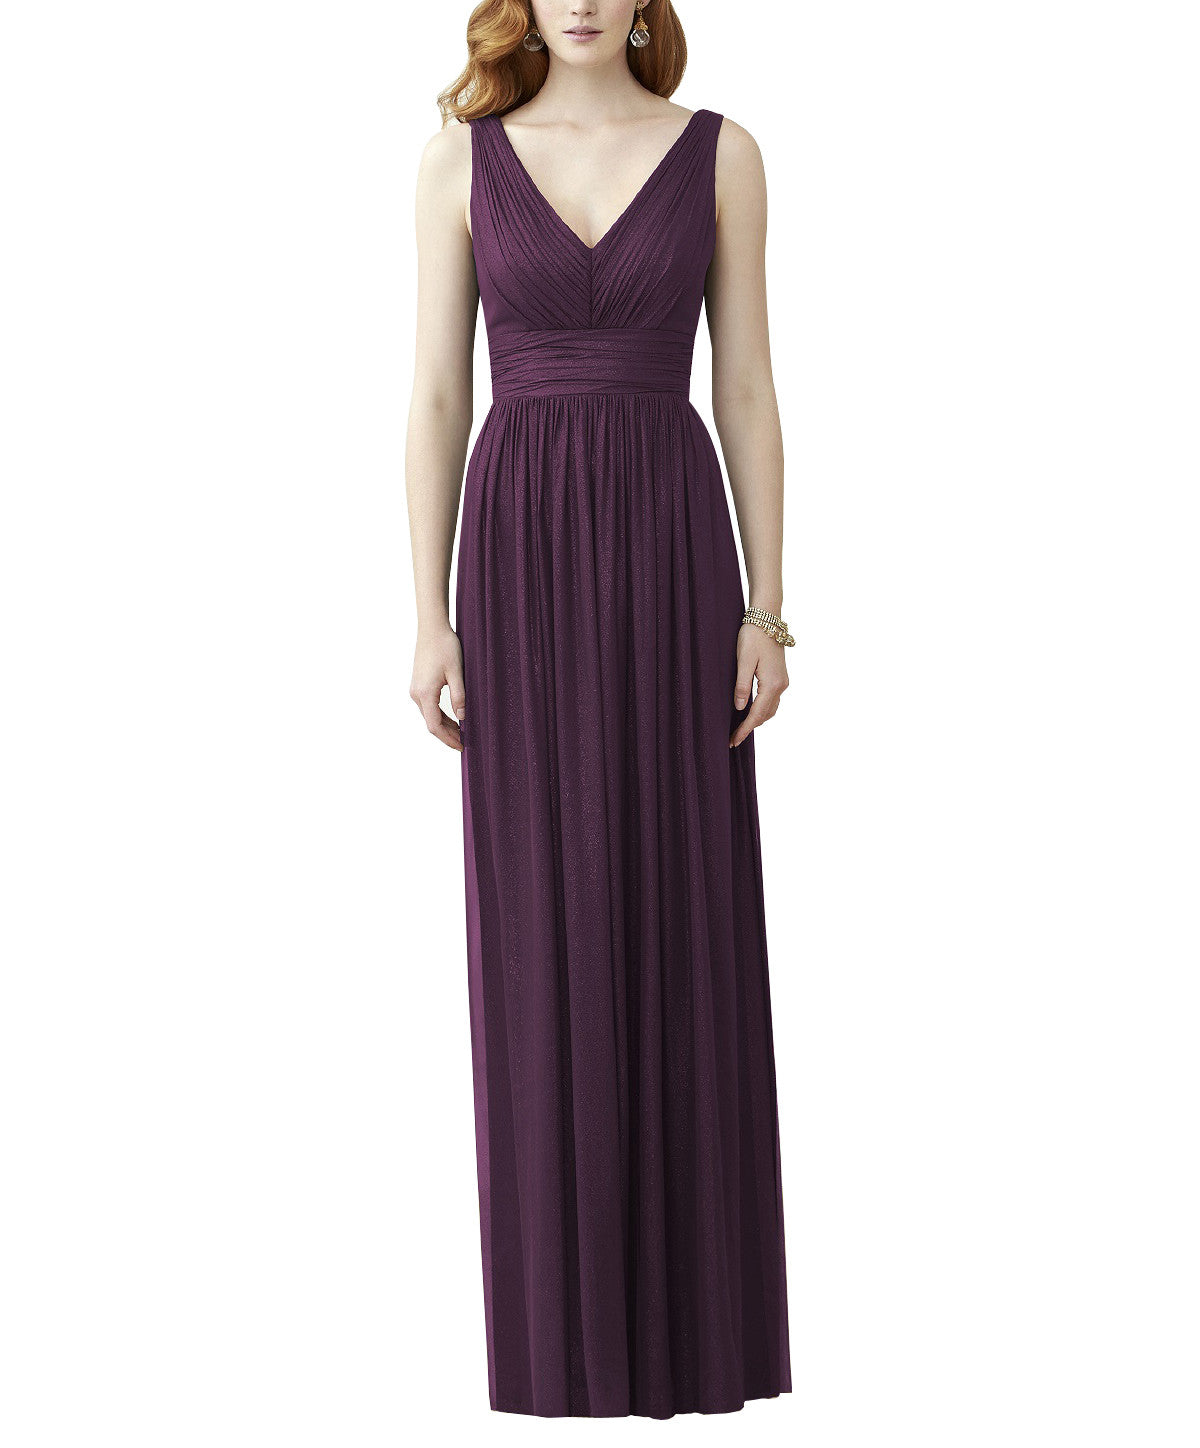 Dessy collection style 2955 bridesmaid dress brideside dessy collection style 2955 ombrellifo Choice Image